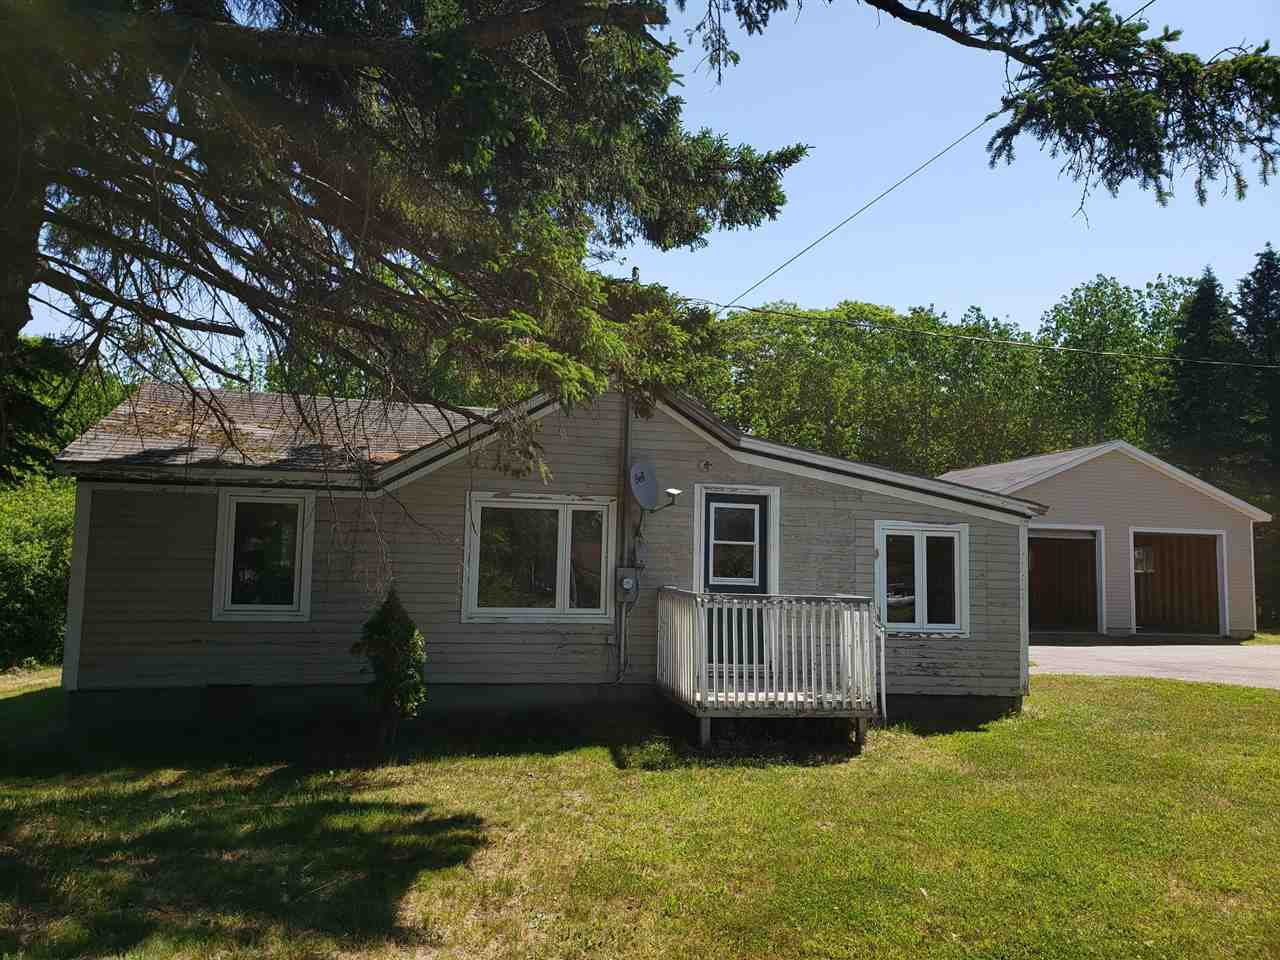 Main Photo: 2046 Torbrook Road in Meadowvale: 400-Annapolis County Residential for sale (Annapolis Valley)  : MLS®# 202010796